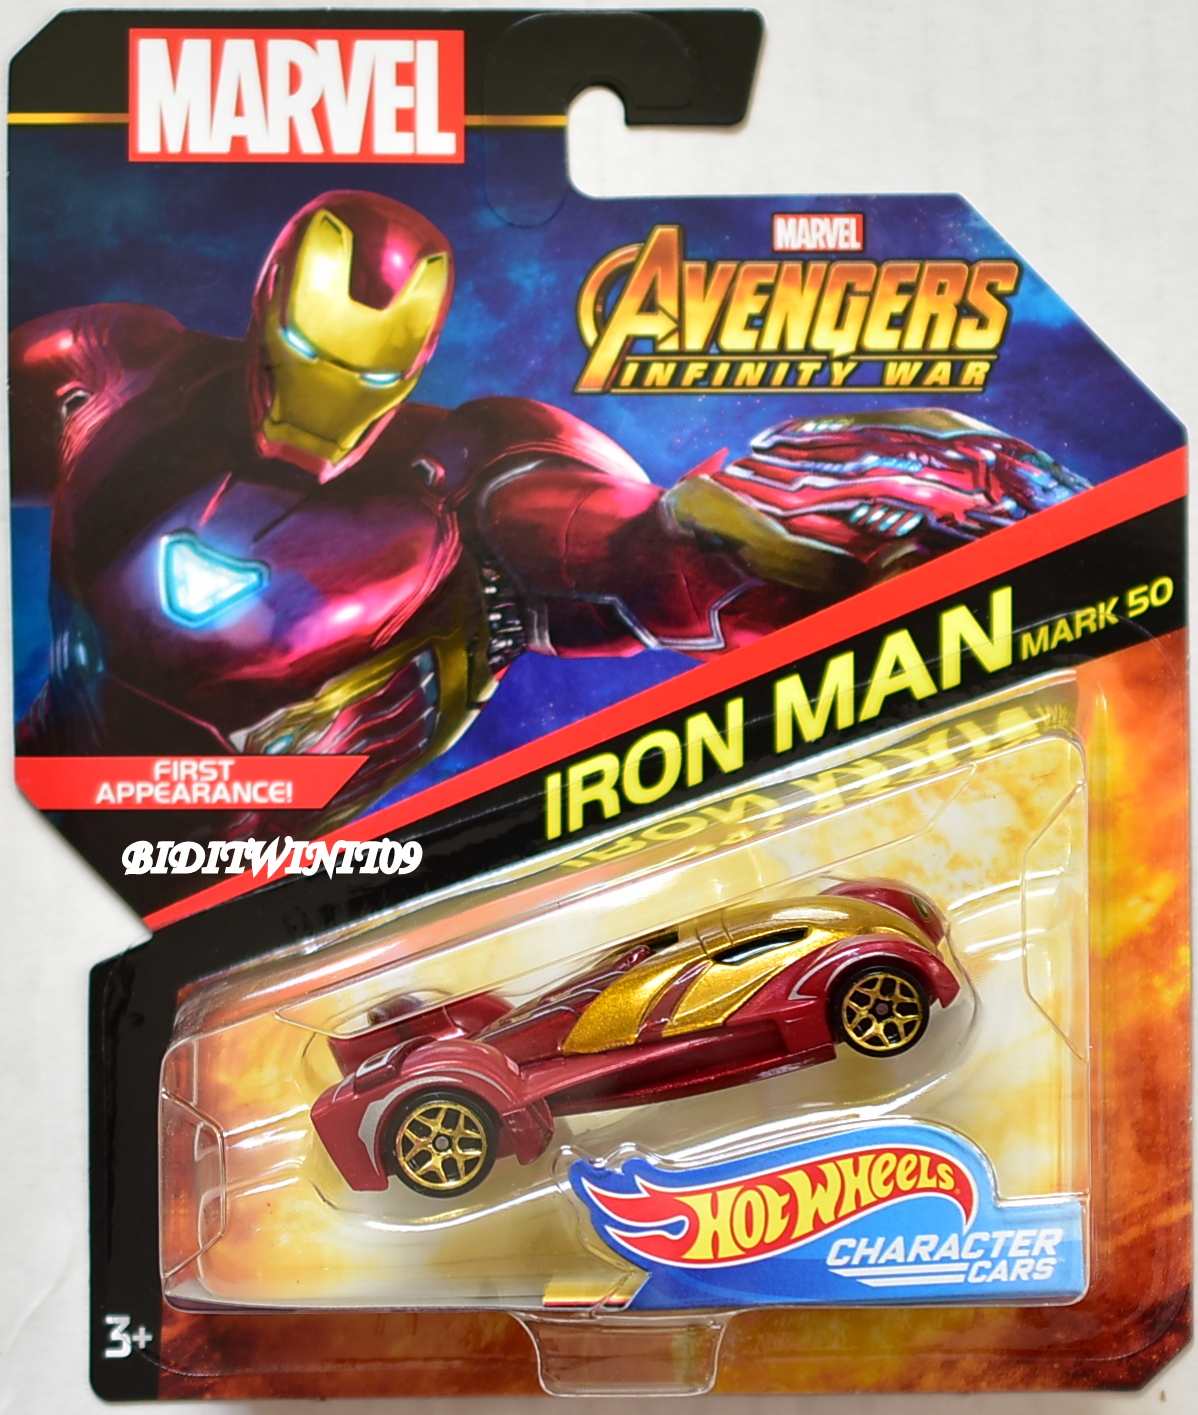 HOT WHEELS MARVEL AVANGERS INFINITY WAR IRON MAN MARK 50 CHARACTER CARS